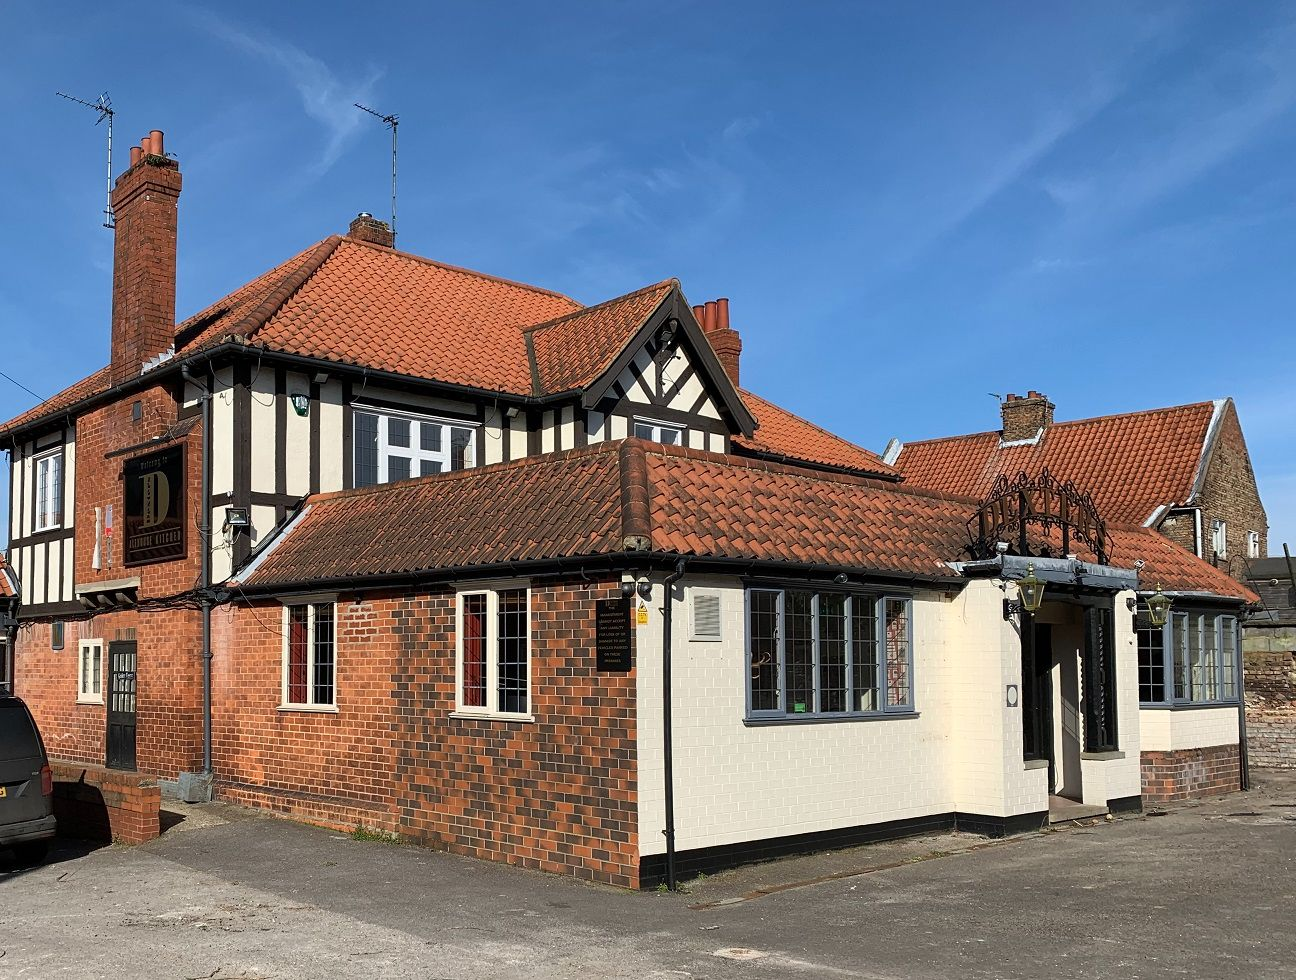 Planning permission granted to convert The Golden Fleece pub to 3 new homes in Louth, Lincolnshire. Planning Application by Fytche-Taylor Planning.